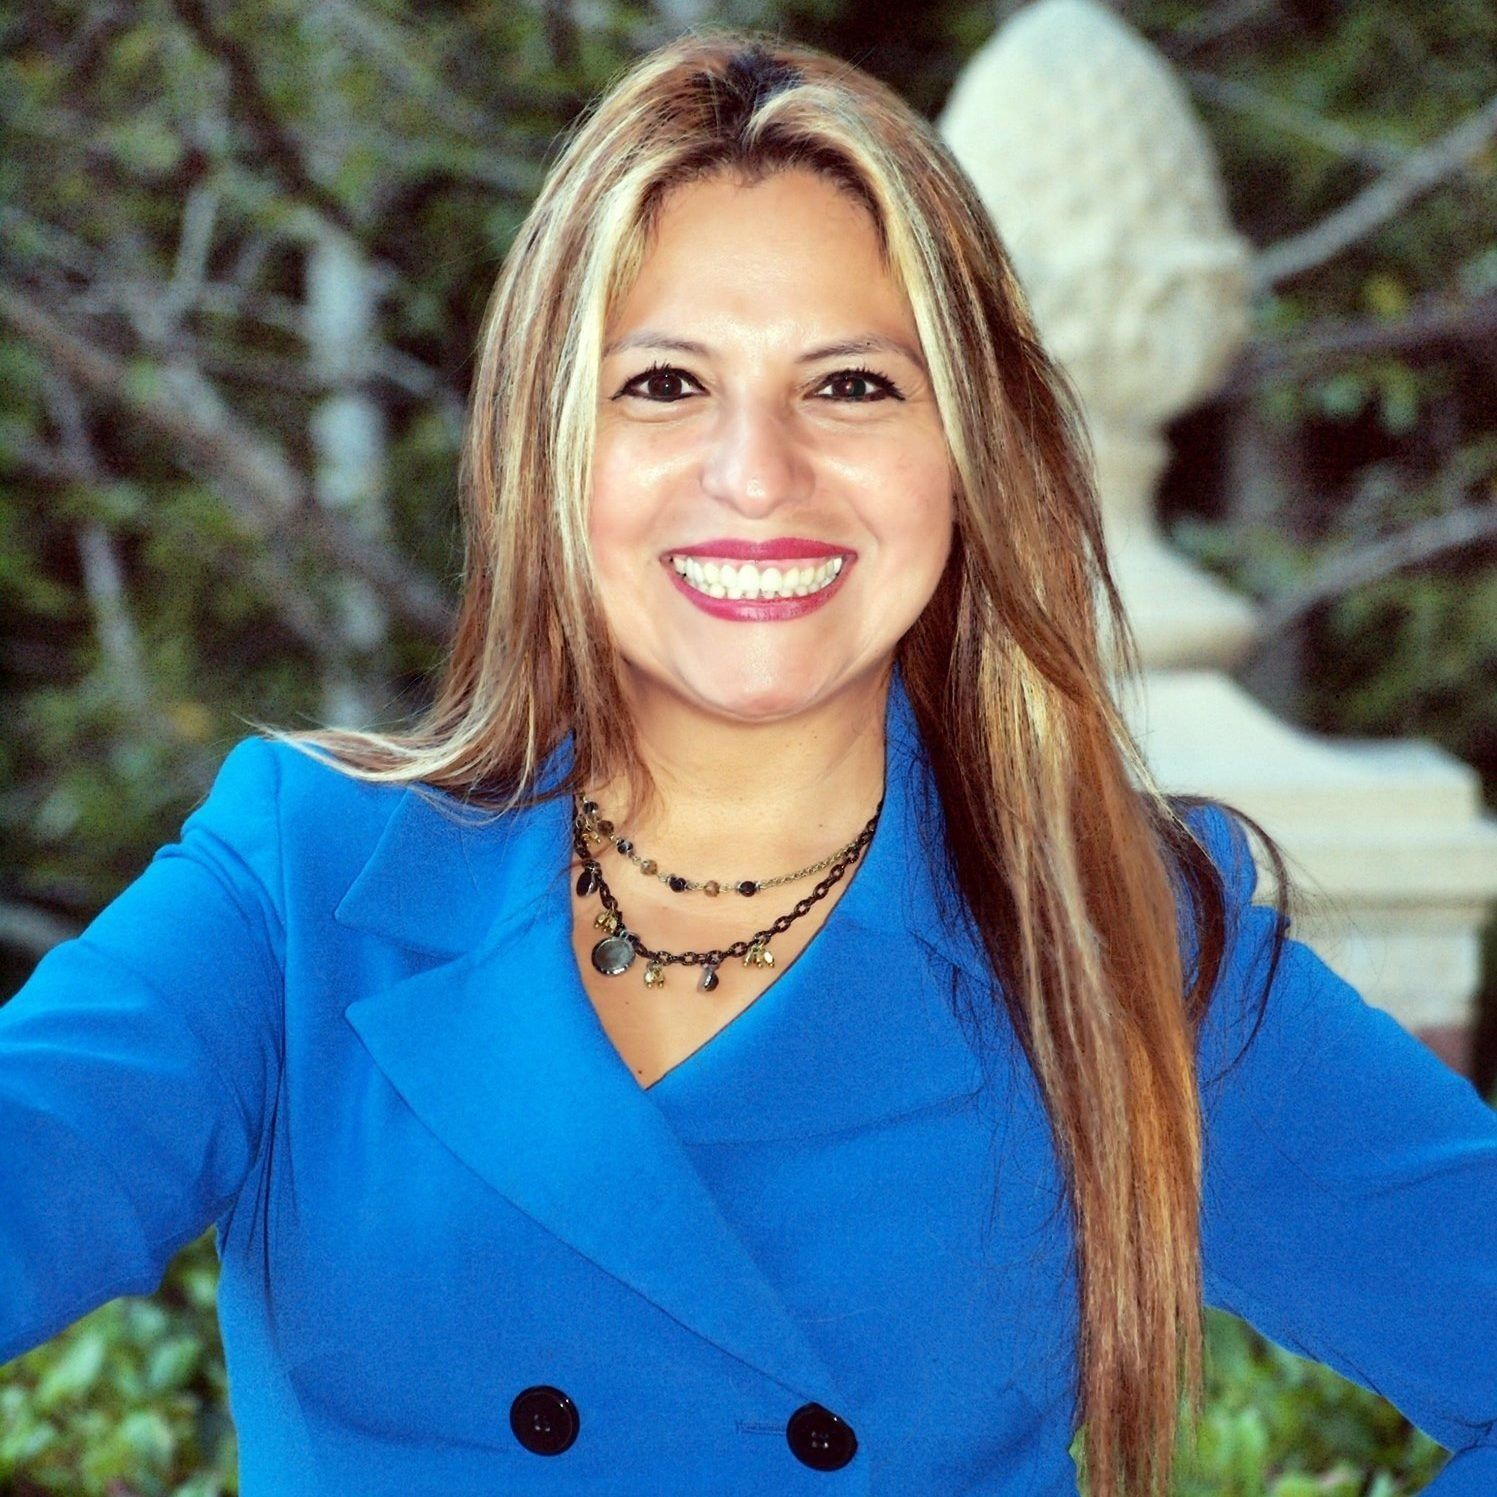 Virginia Del. Elizabeth Guzman (D) immigrated from Peru to the United States 20 years ago. On Tuesday, she will respond to Pr